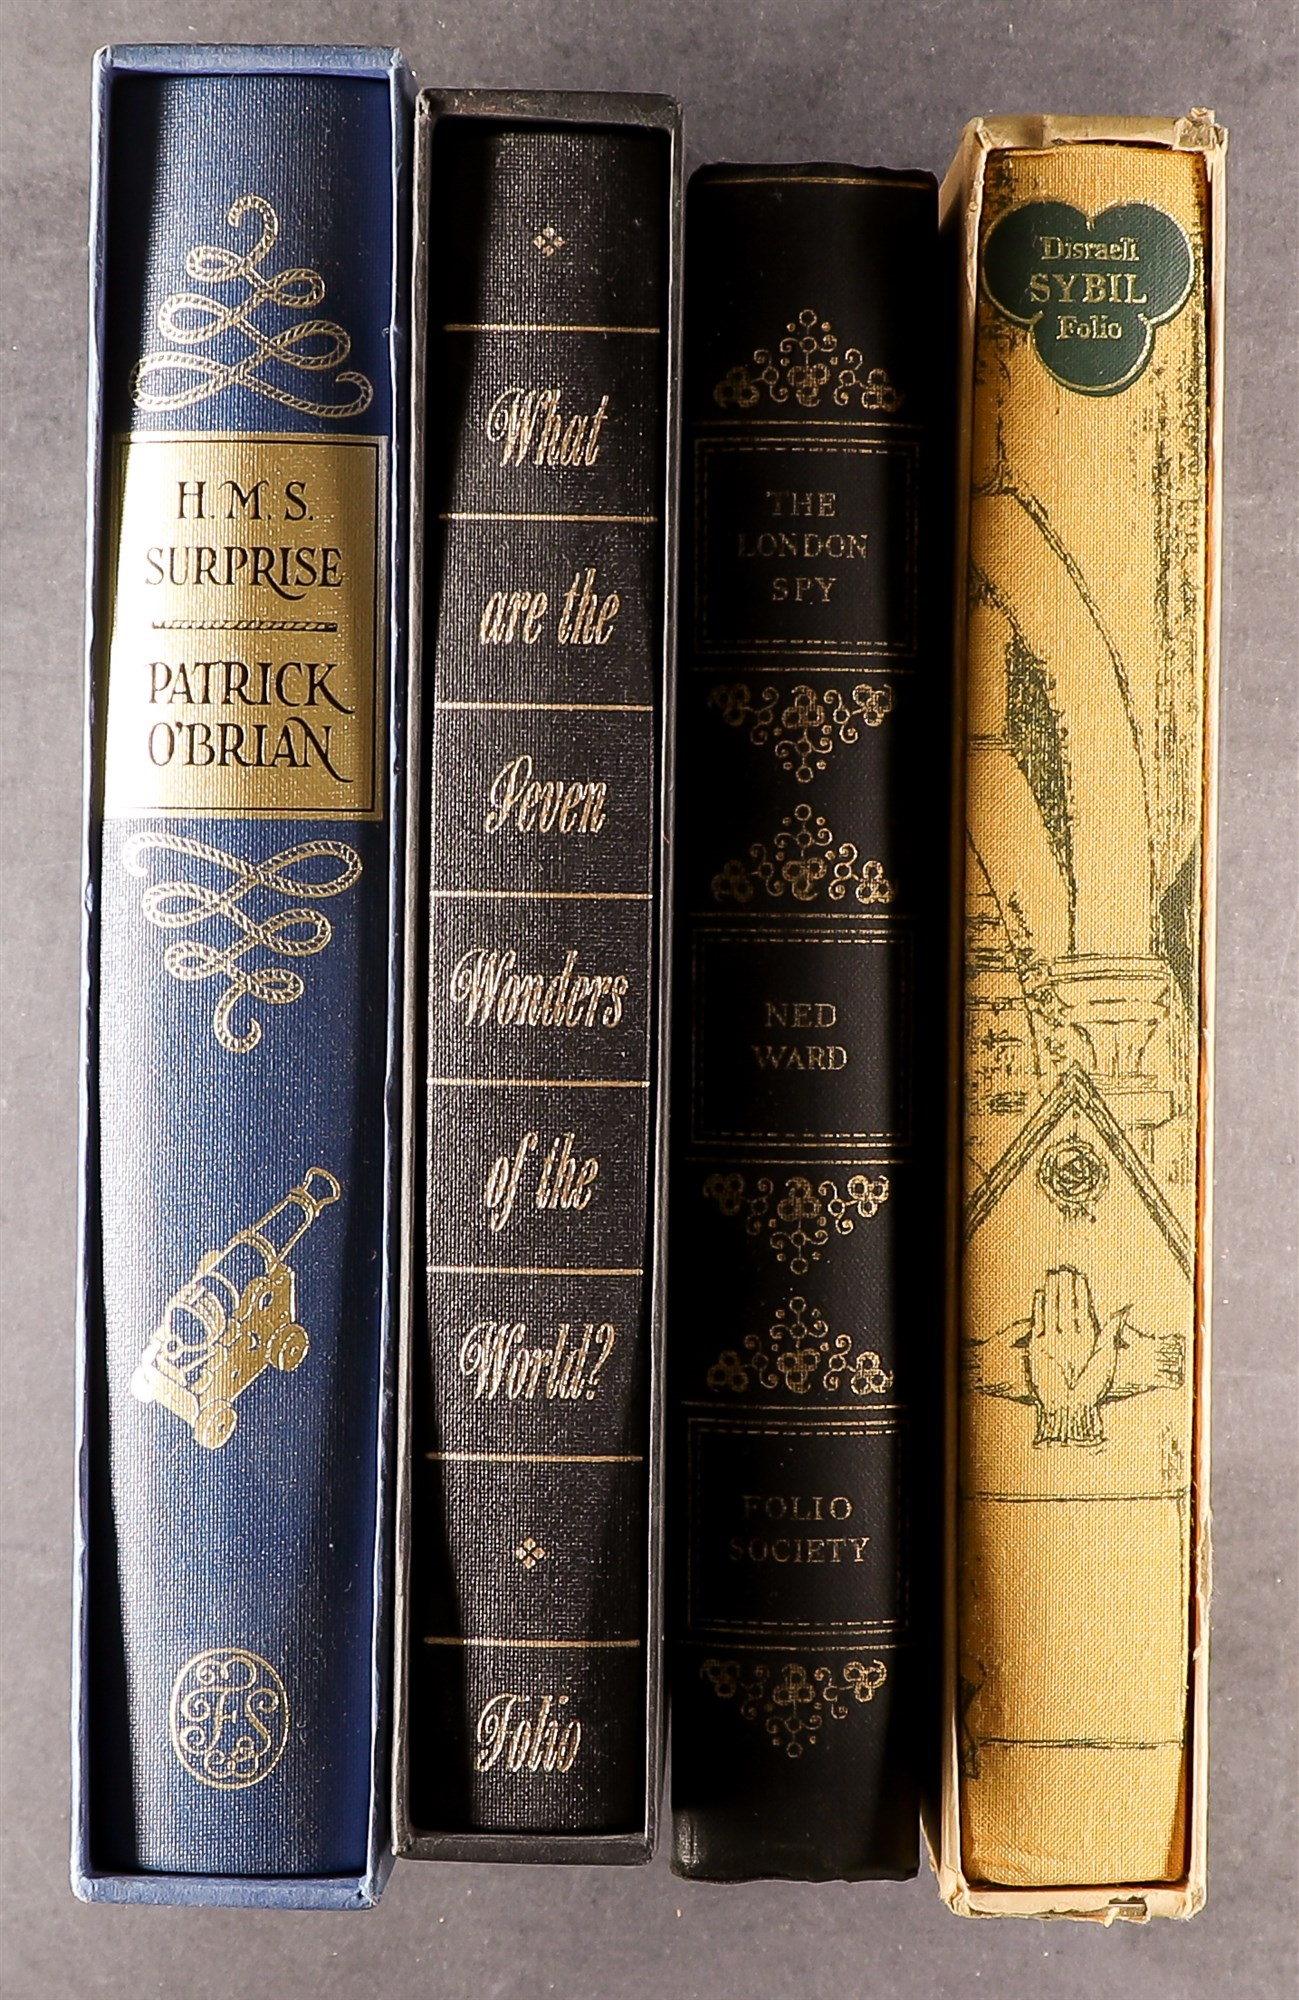 FOLIO SOCIETY BOOK COLLECTION. Eighteen books, mainly with slipcases. Authors include Shakespeare, - Image 2 of 2